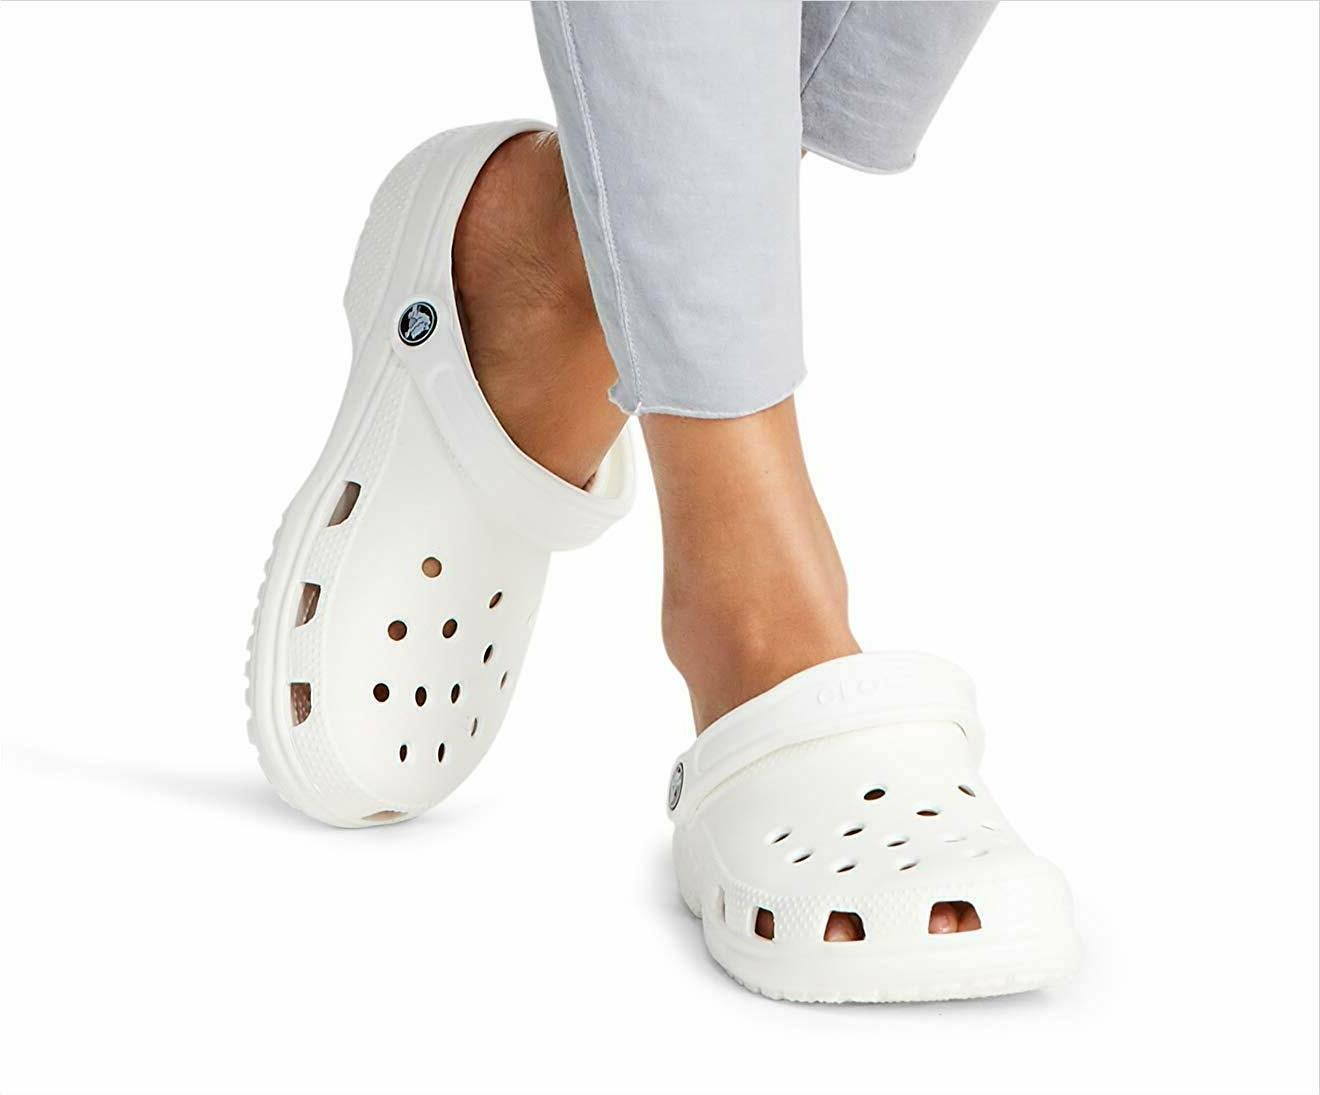 Crocs and Classic Slip On Water